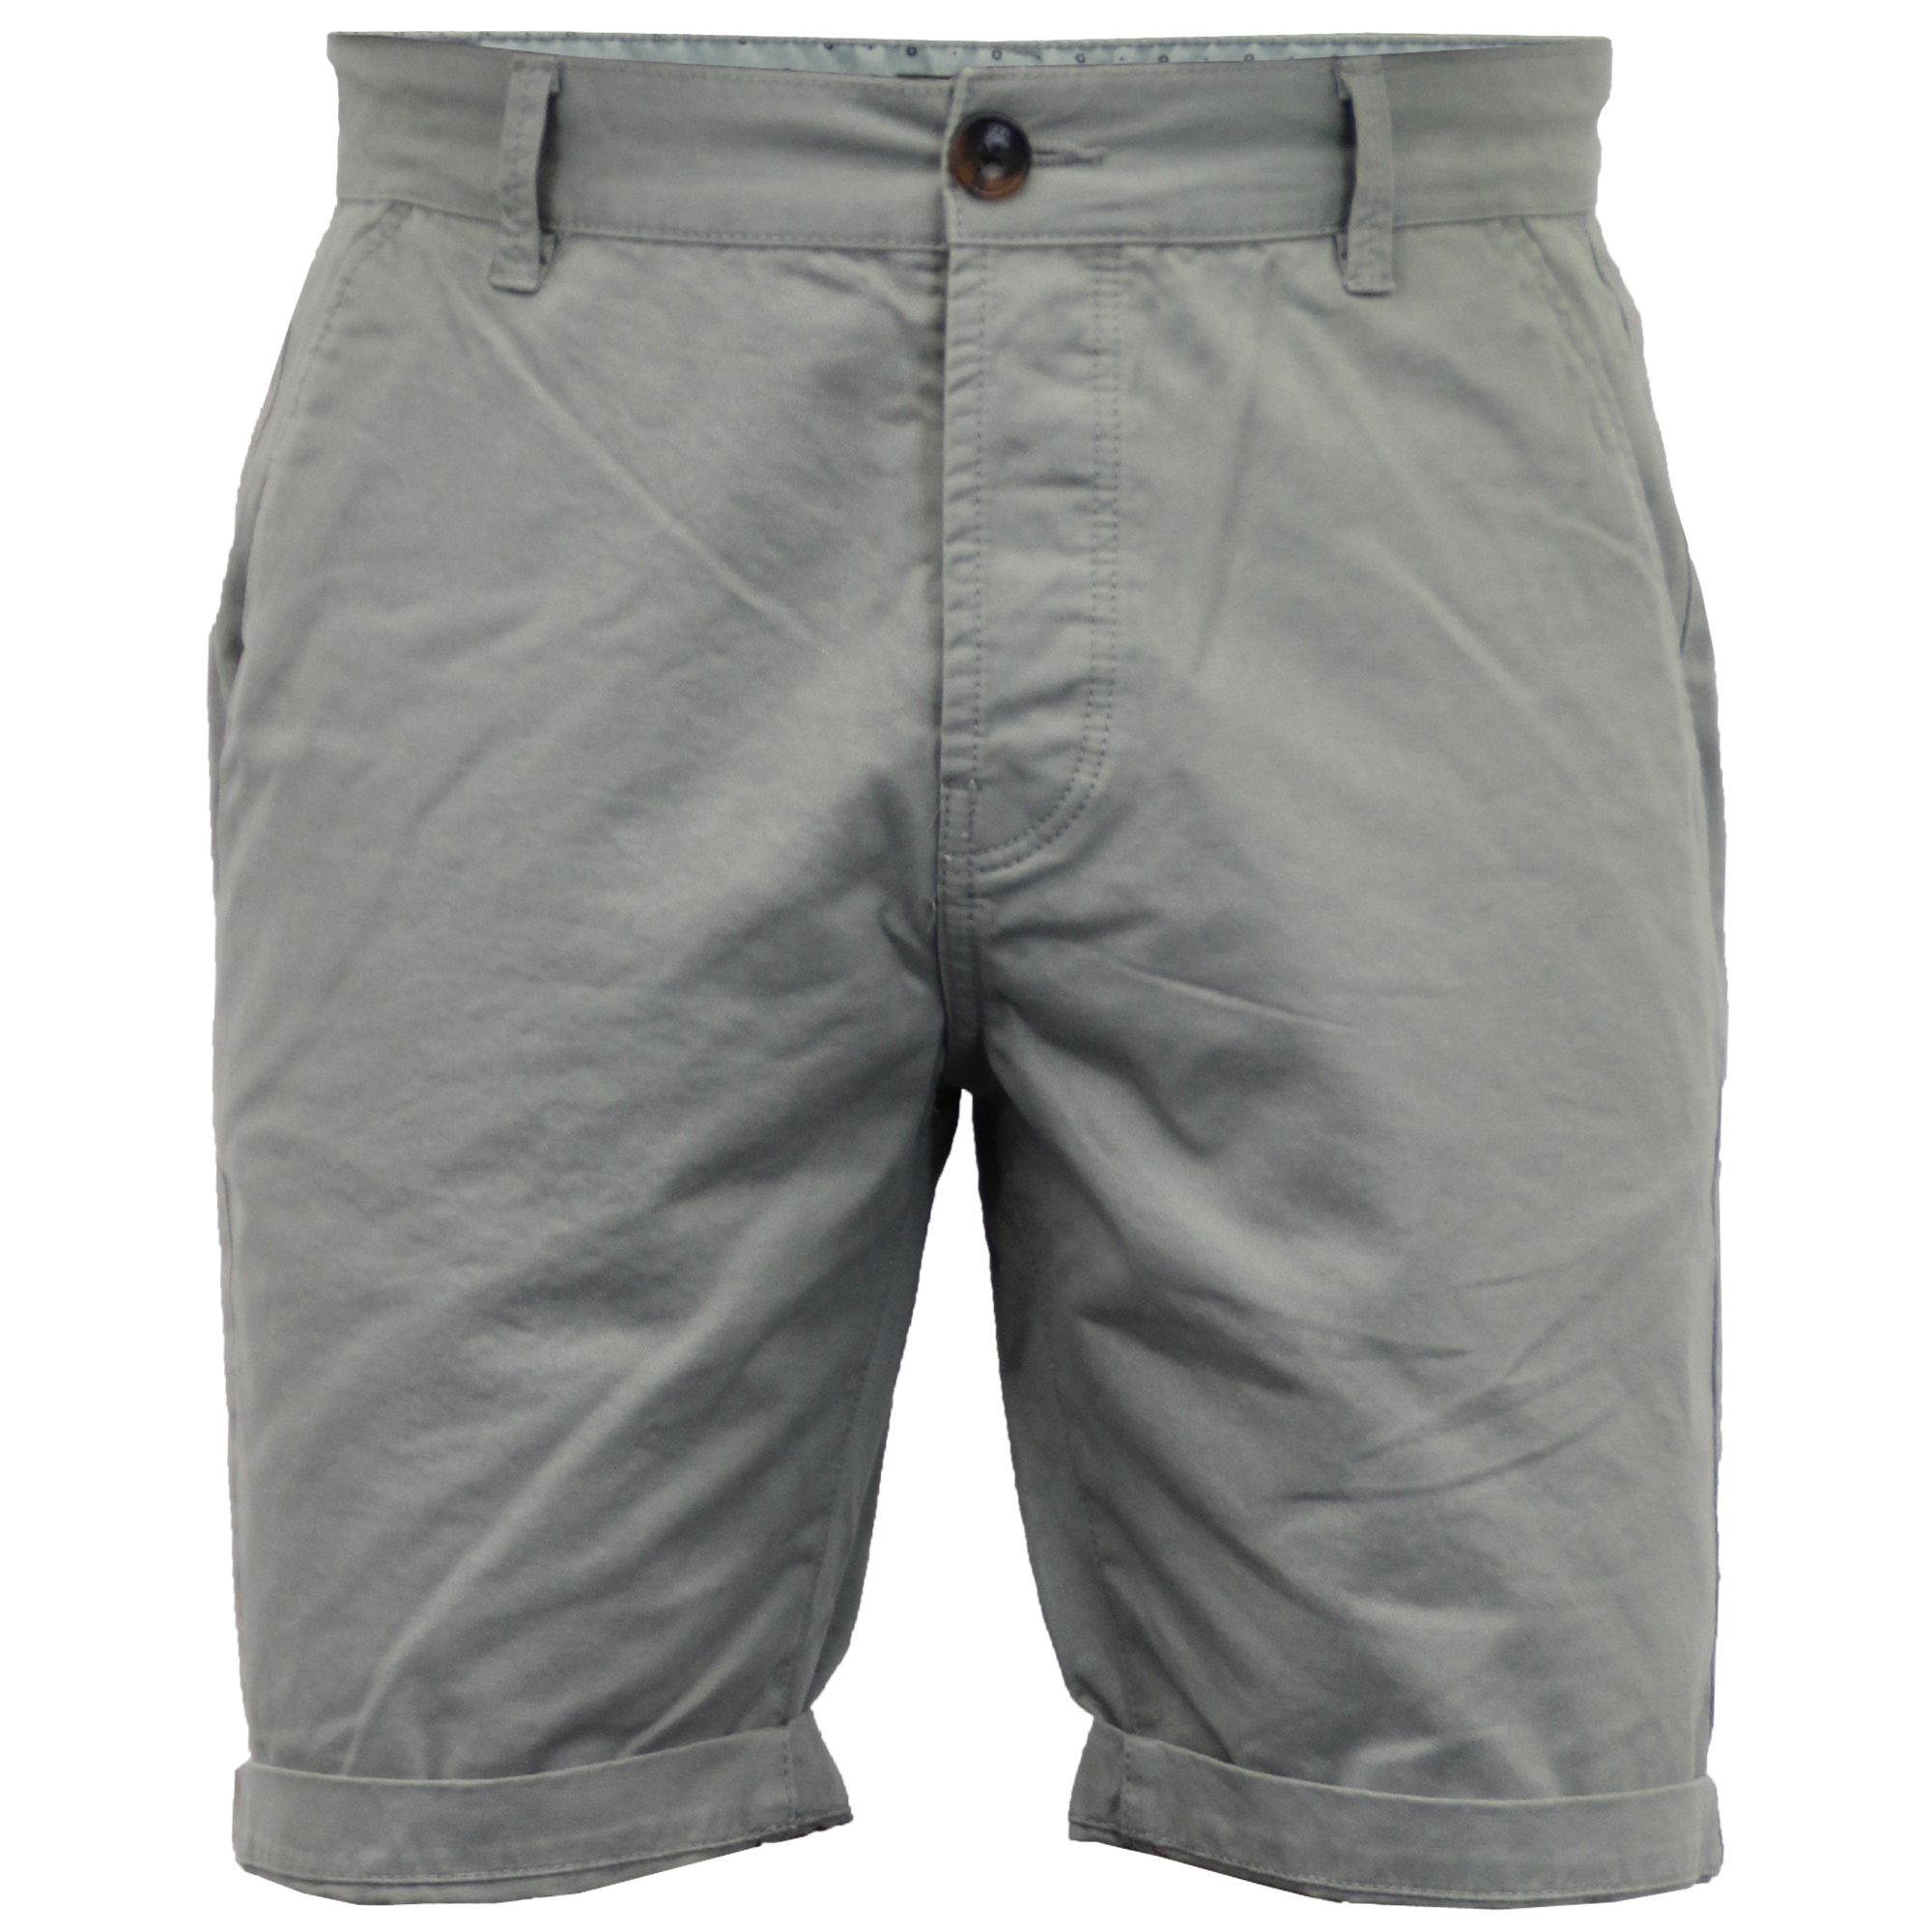 Mens-Chino-Shorts-Threadbare-Pants-Westace-Stallion-Knee-Length-Roll-Up-Summer thumbnail 23